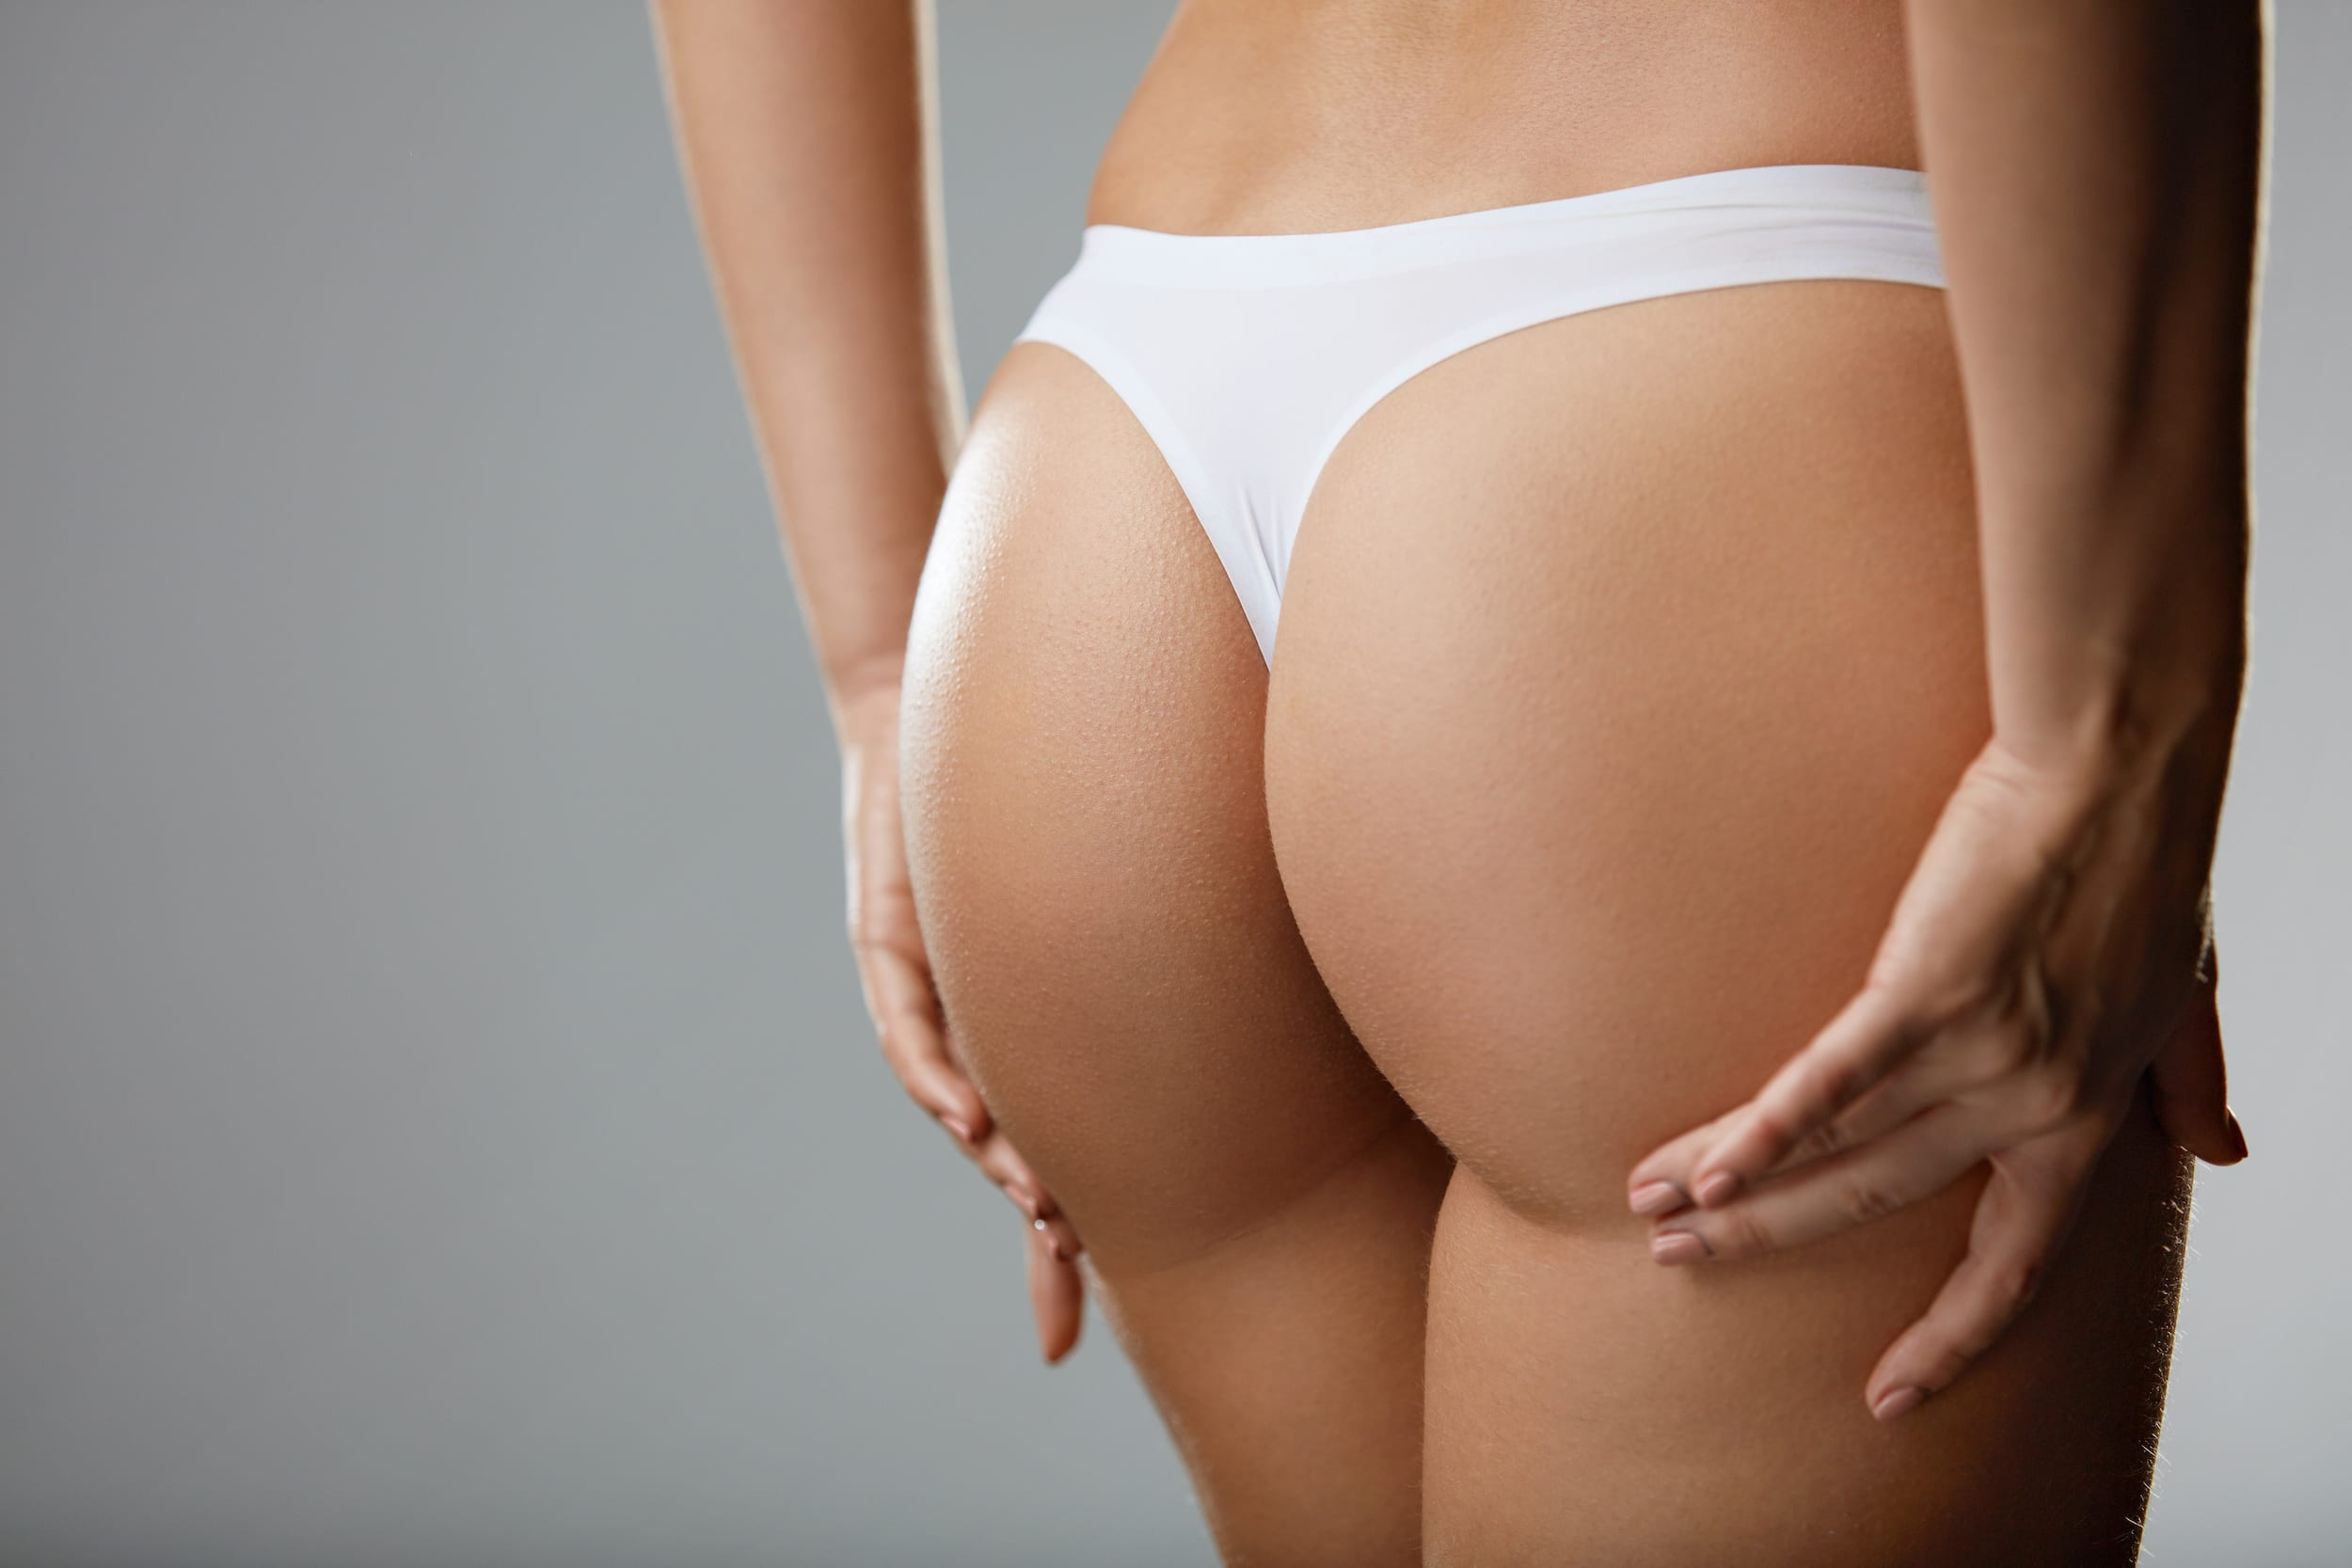 Woman's buttocks photograph by ian hootonscience photo library